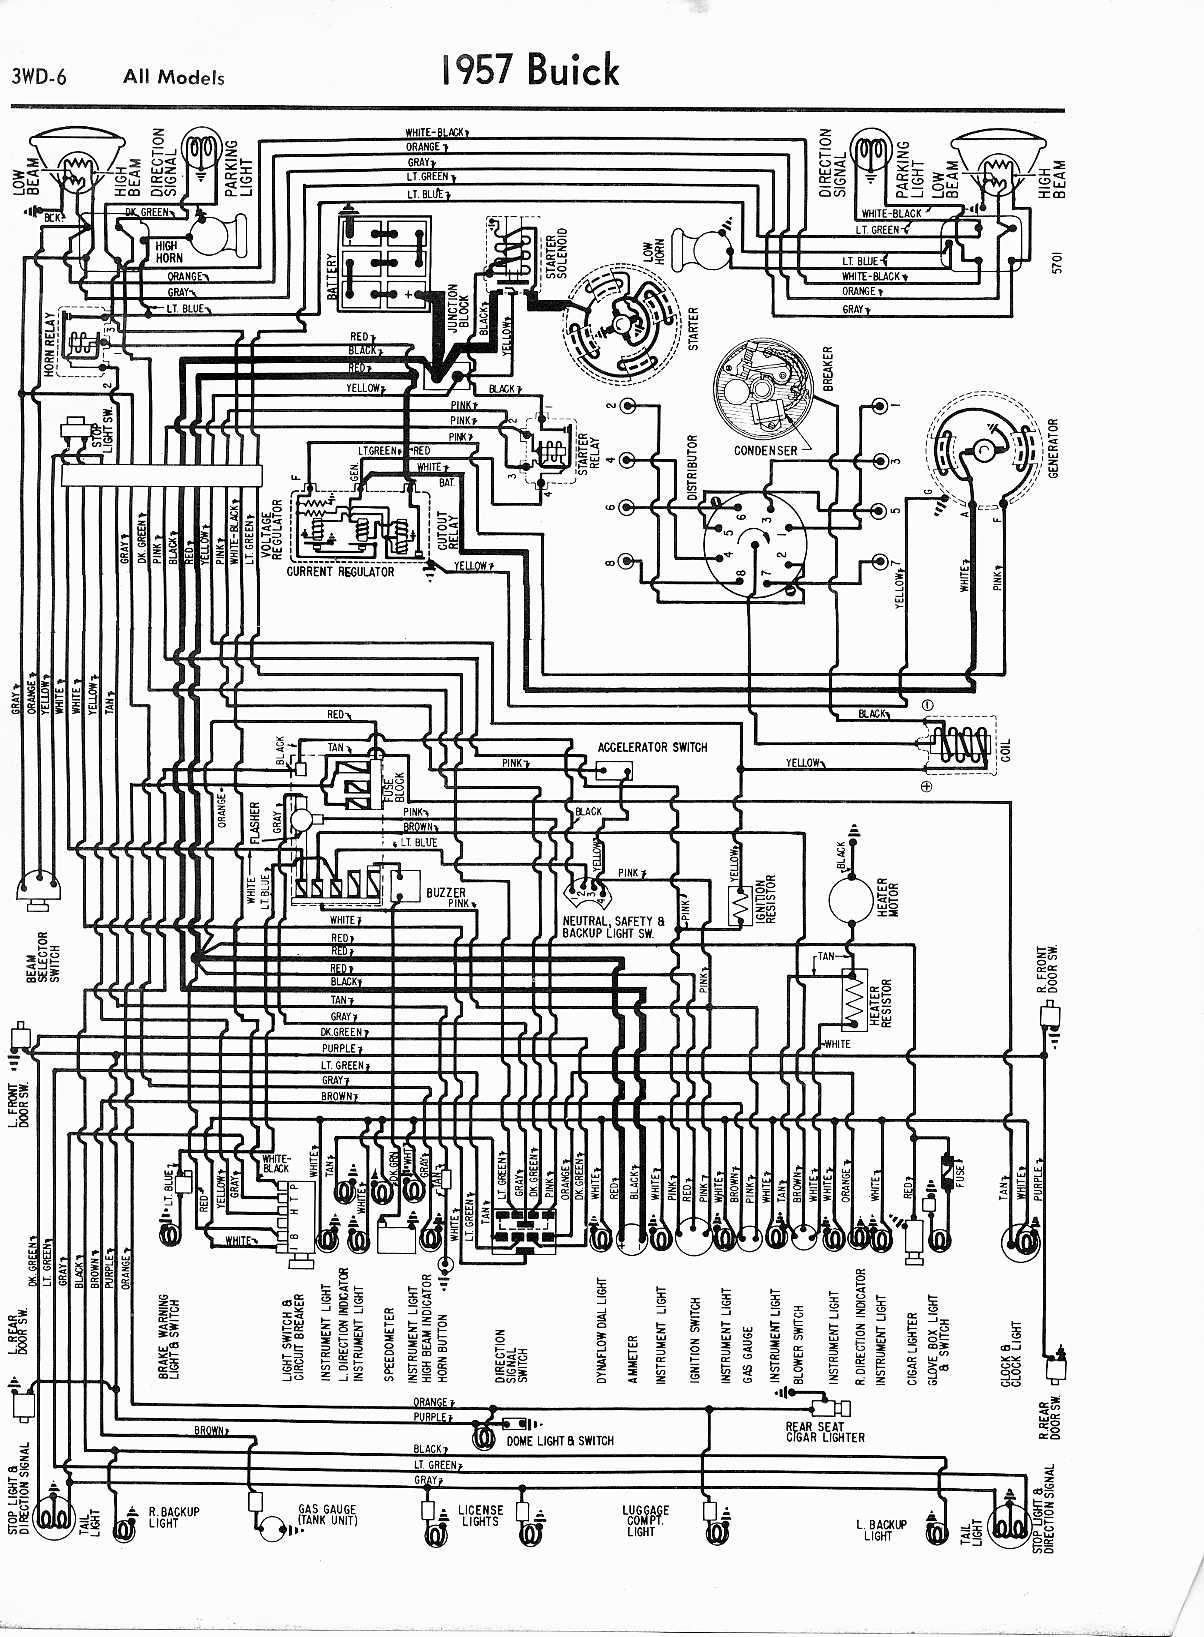 hight resolution of wildcat wiring diagram wiring diagrams exportbuick wiring diagrams 1957 1965 01 arctic cat 250 wiring diagram